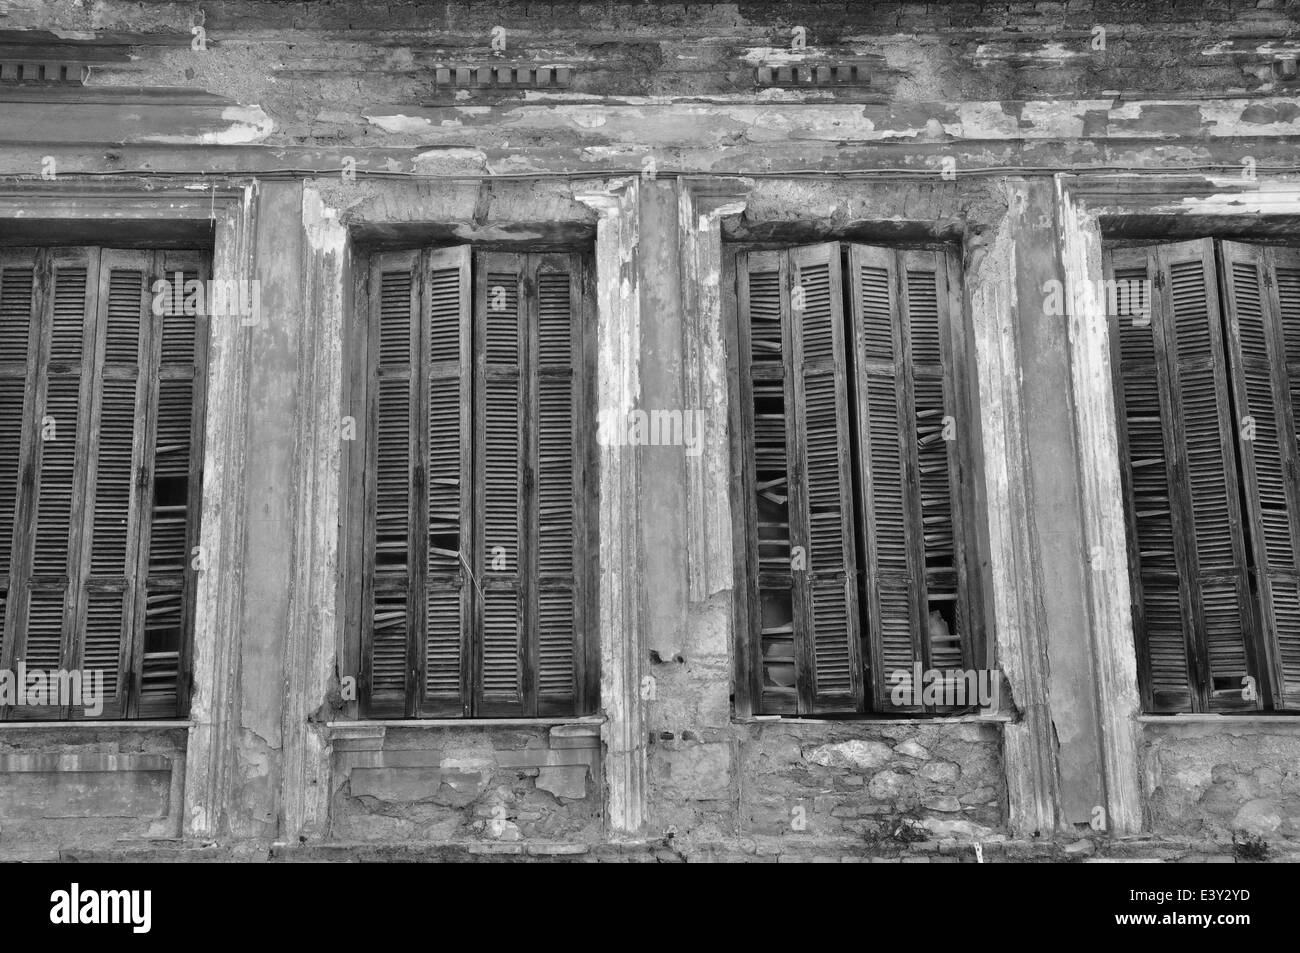 Broken wooden window shutters and textured wall of an abandoned house. Urban decay black and white. - Stock Image